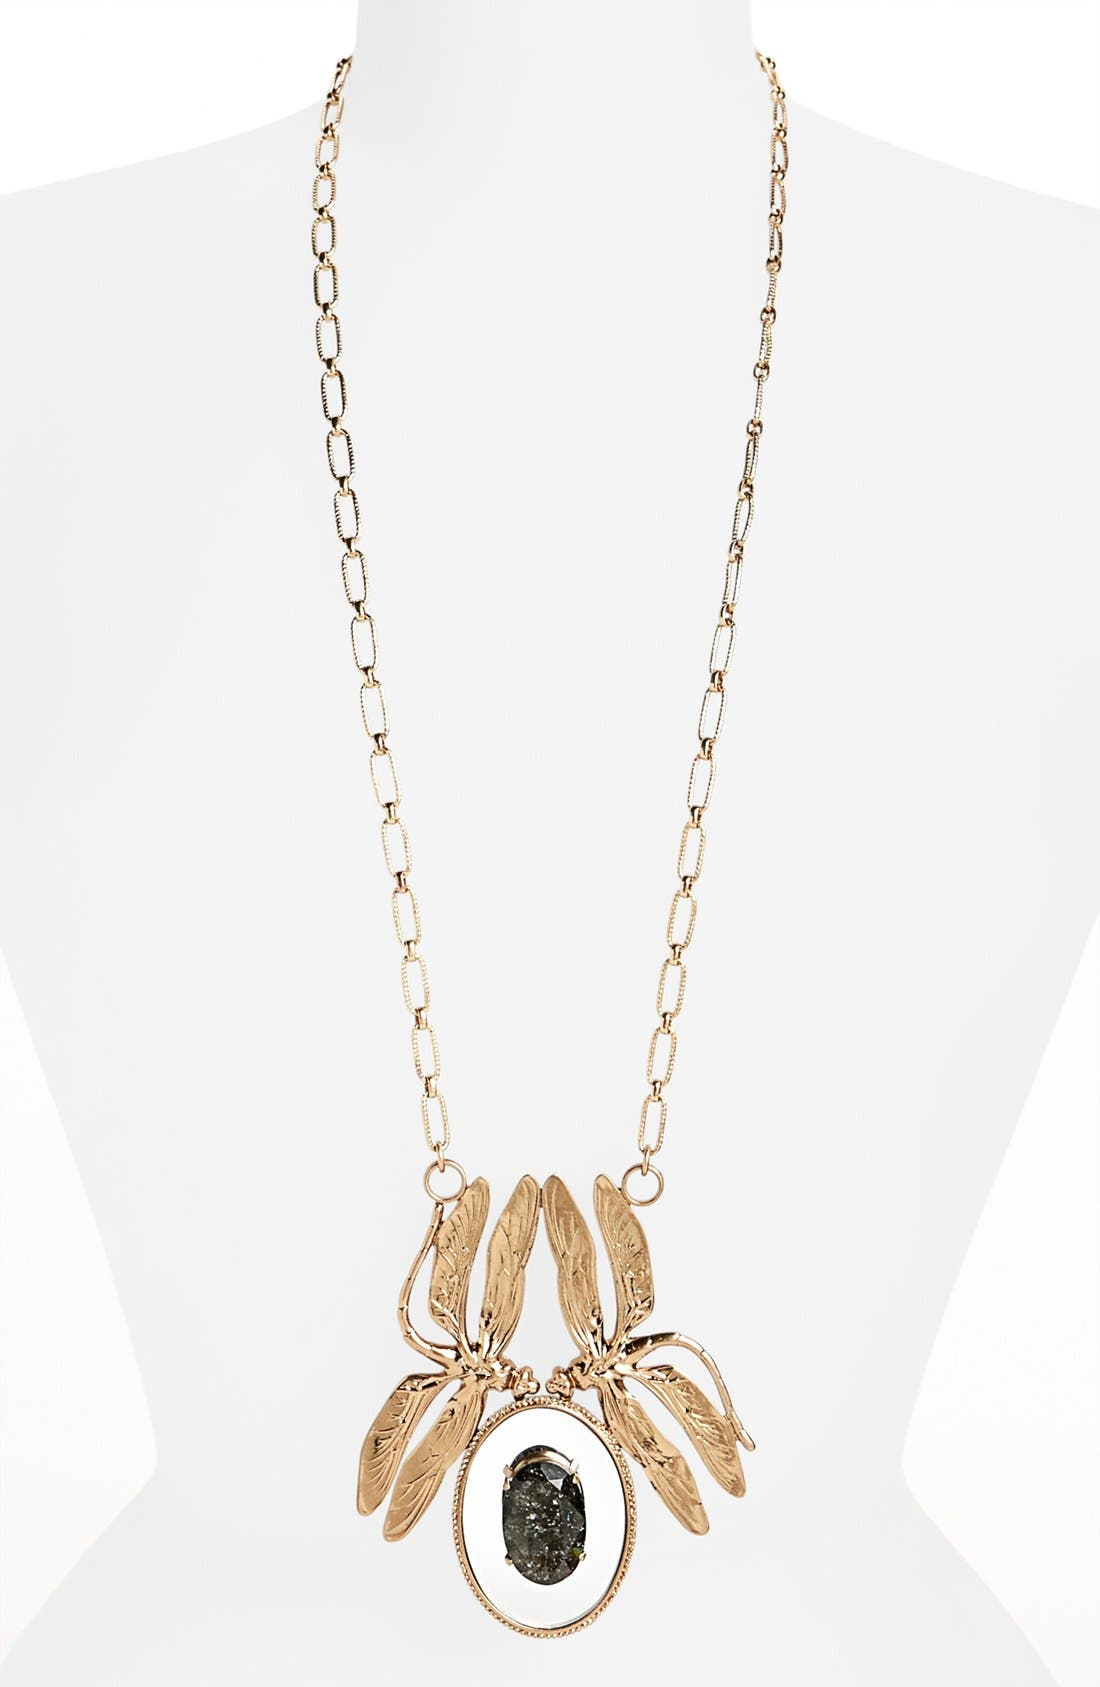 Main Image - Tory Burch 'Mirrored' Dragonfly Pendant Necklace